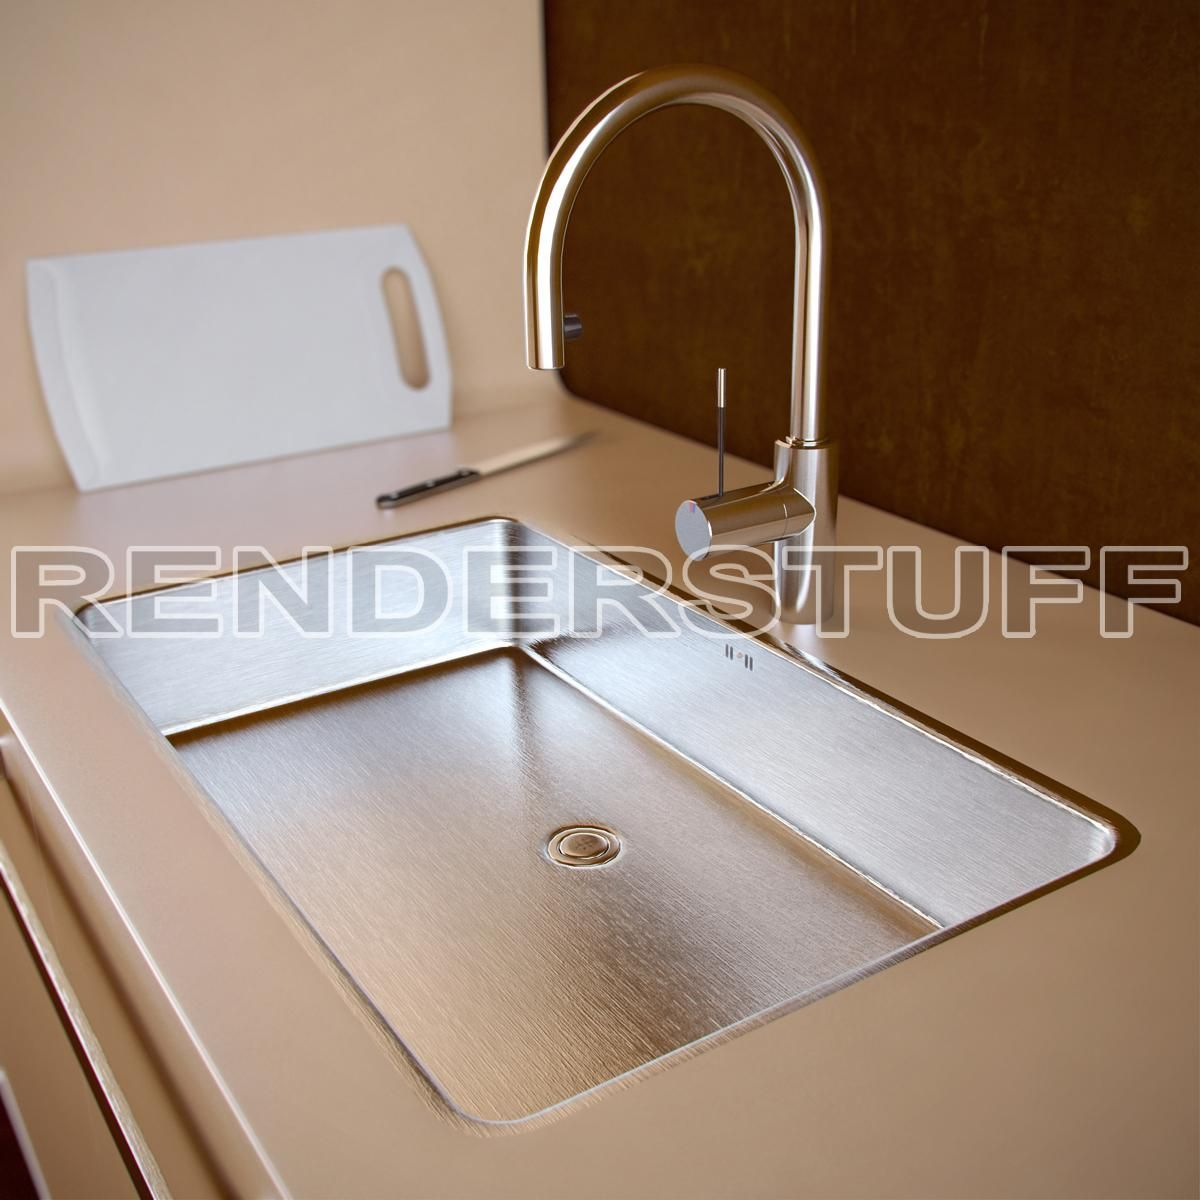 new kitchen sink cabinet ideas for small kitchens 3d model with faucet modern elegant models